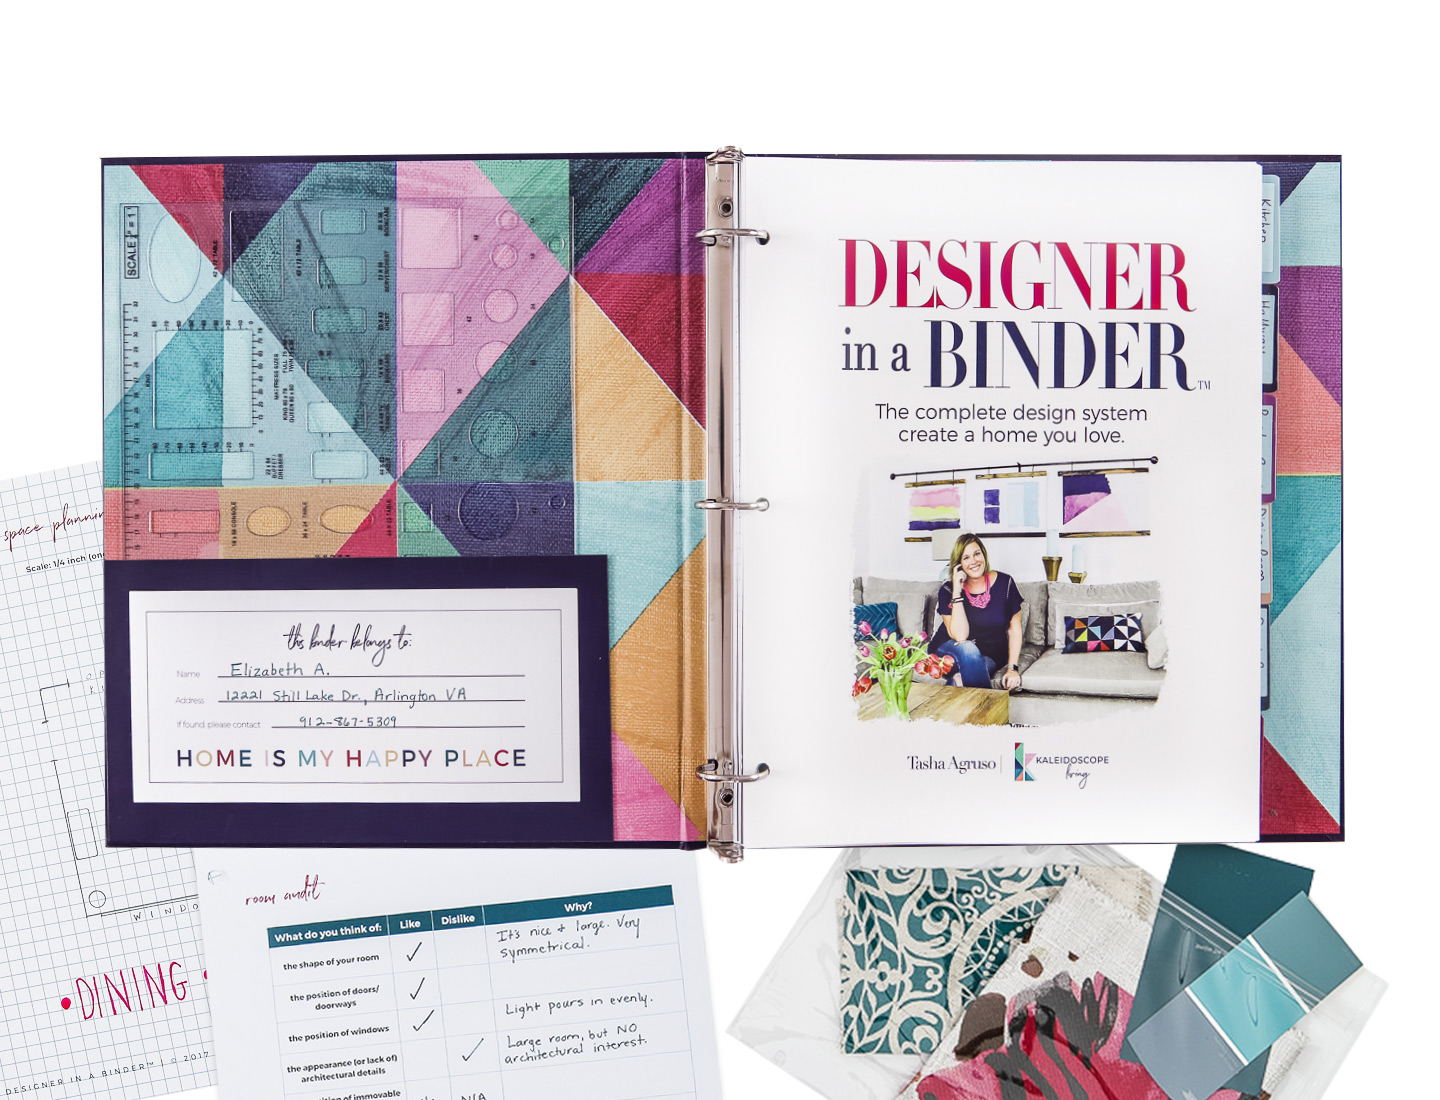 interior design books Designer in a Binder